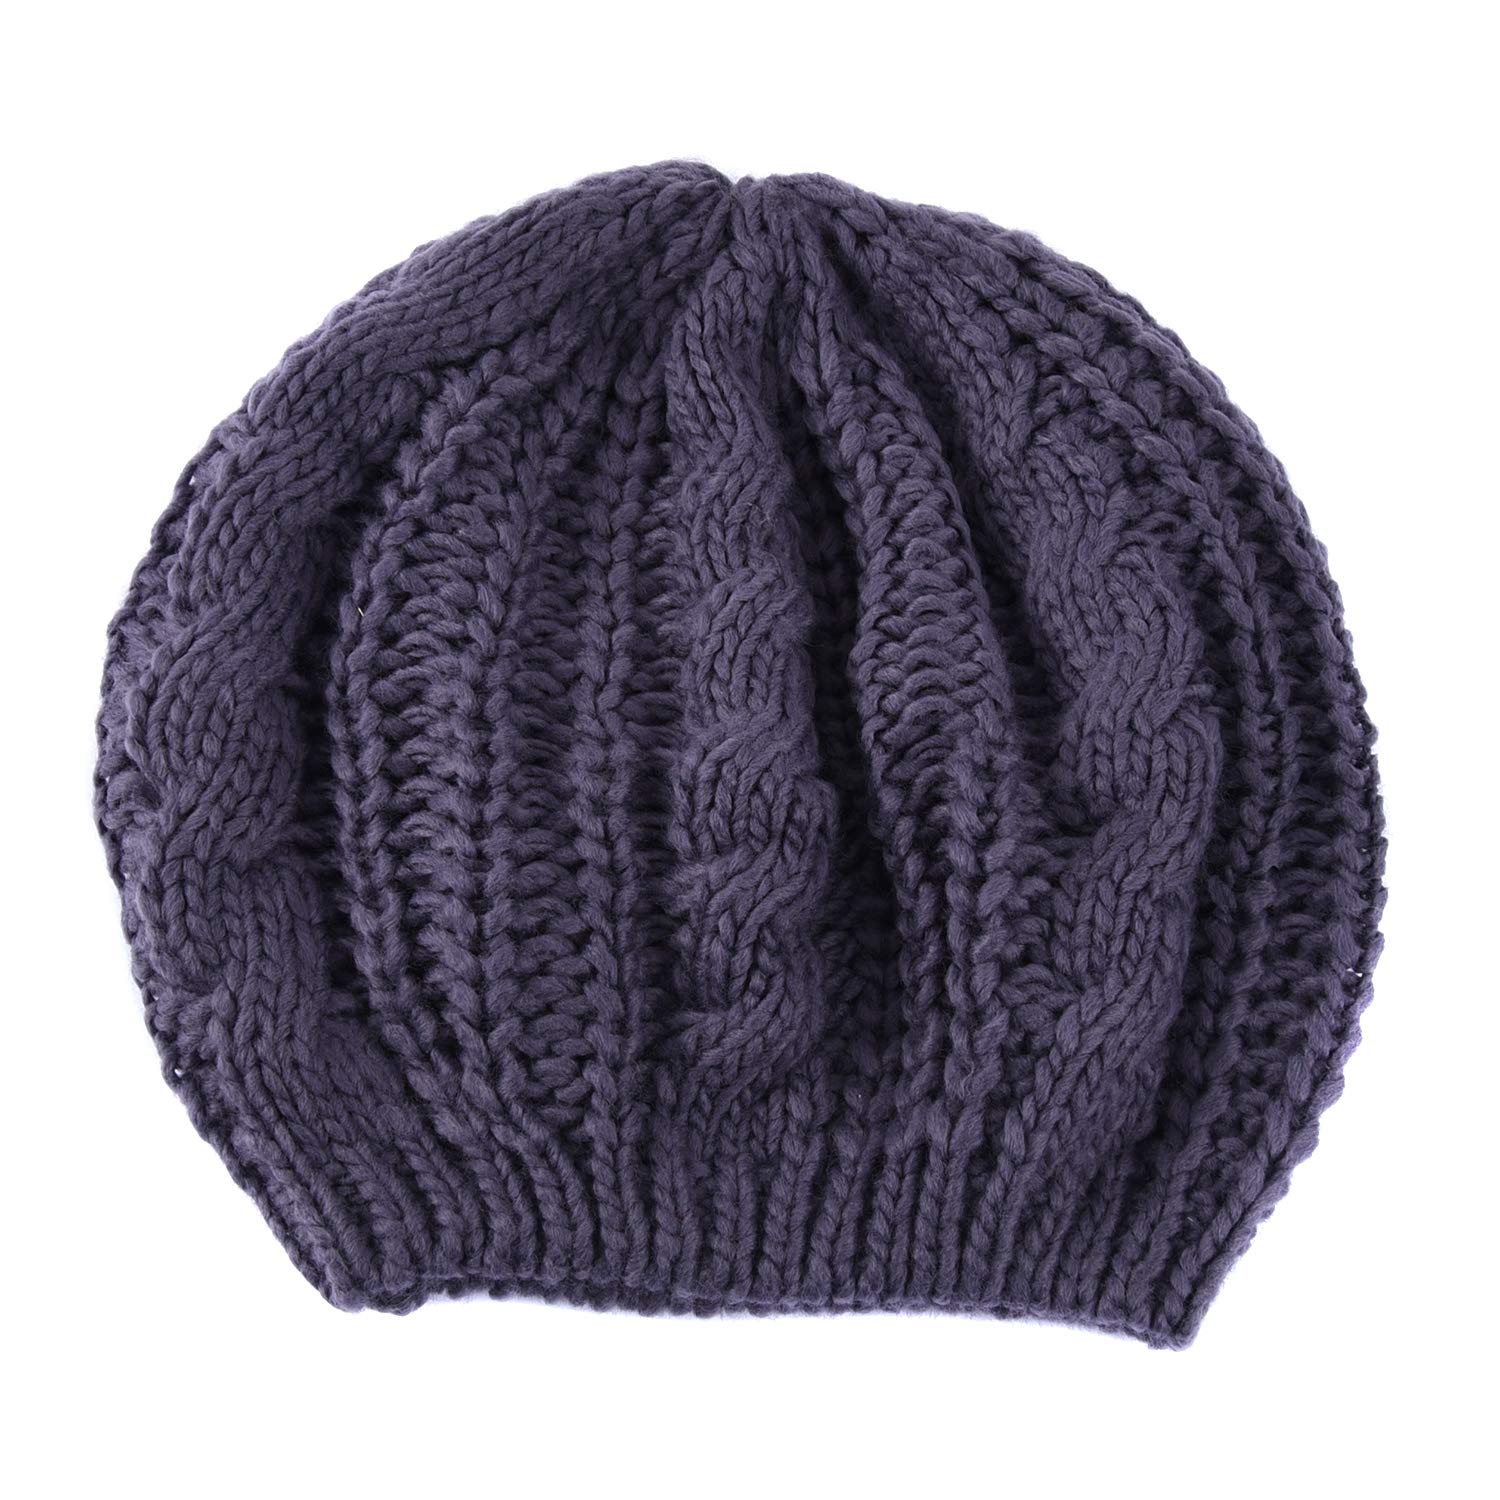 ddd71e82847 Amazon.com  EUBUY Lady Winter Warm Baggy Beret Chunky Knitted Braided  Beanie Hat  Home   Kitchen